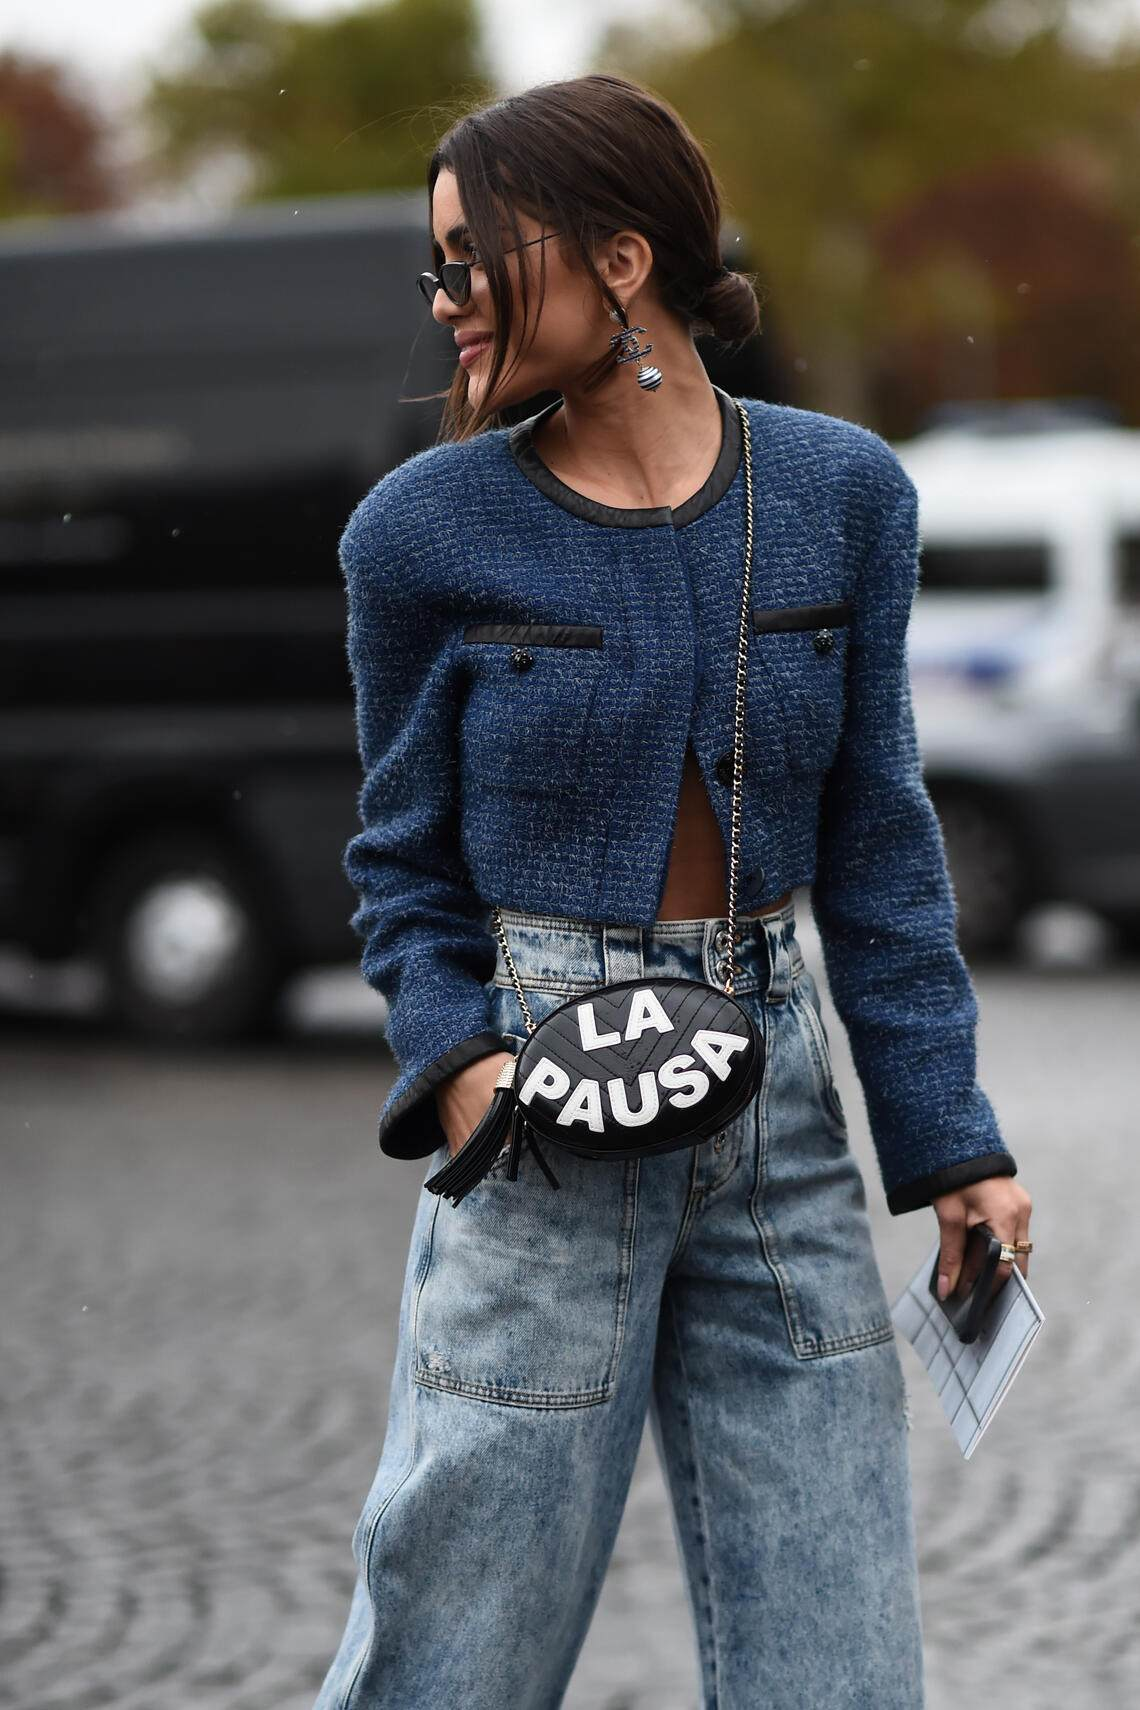 PARIS, FRANCE - OCTOBER 01: Camila Coelho is seen wearing Chanel outside the Chanel show during Paris Fashion Week SS20 on October 1, 2019 in Paris, France. (Photo by Daniel Zuchnik/Getty Images)